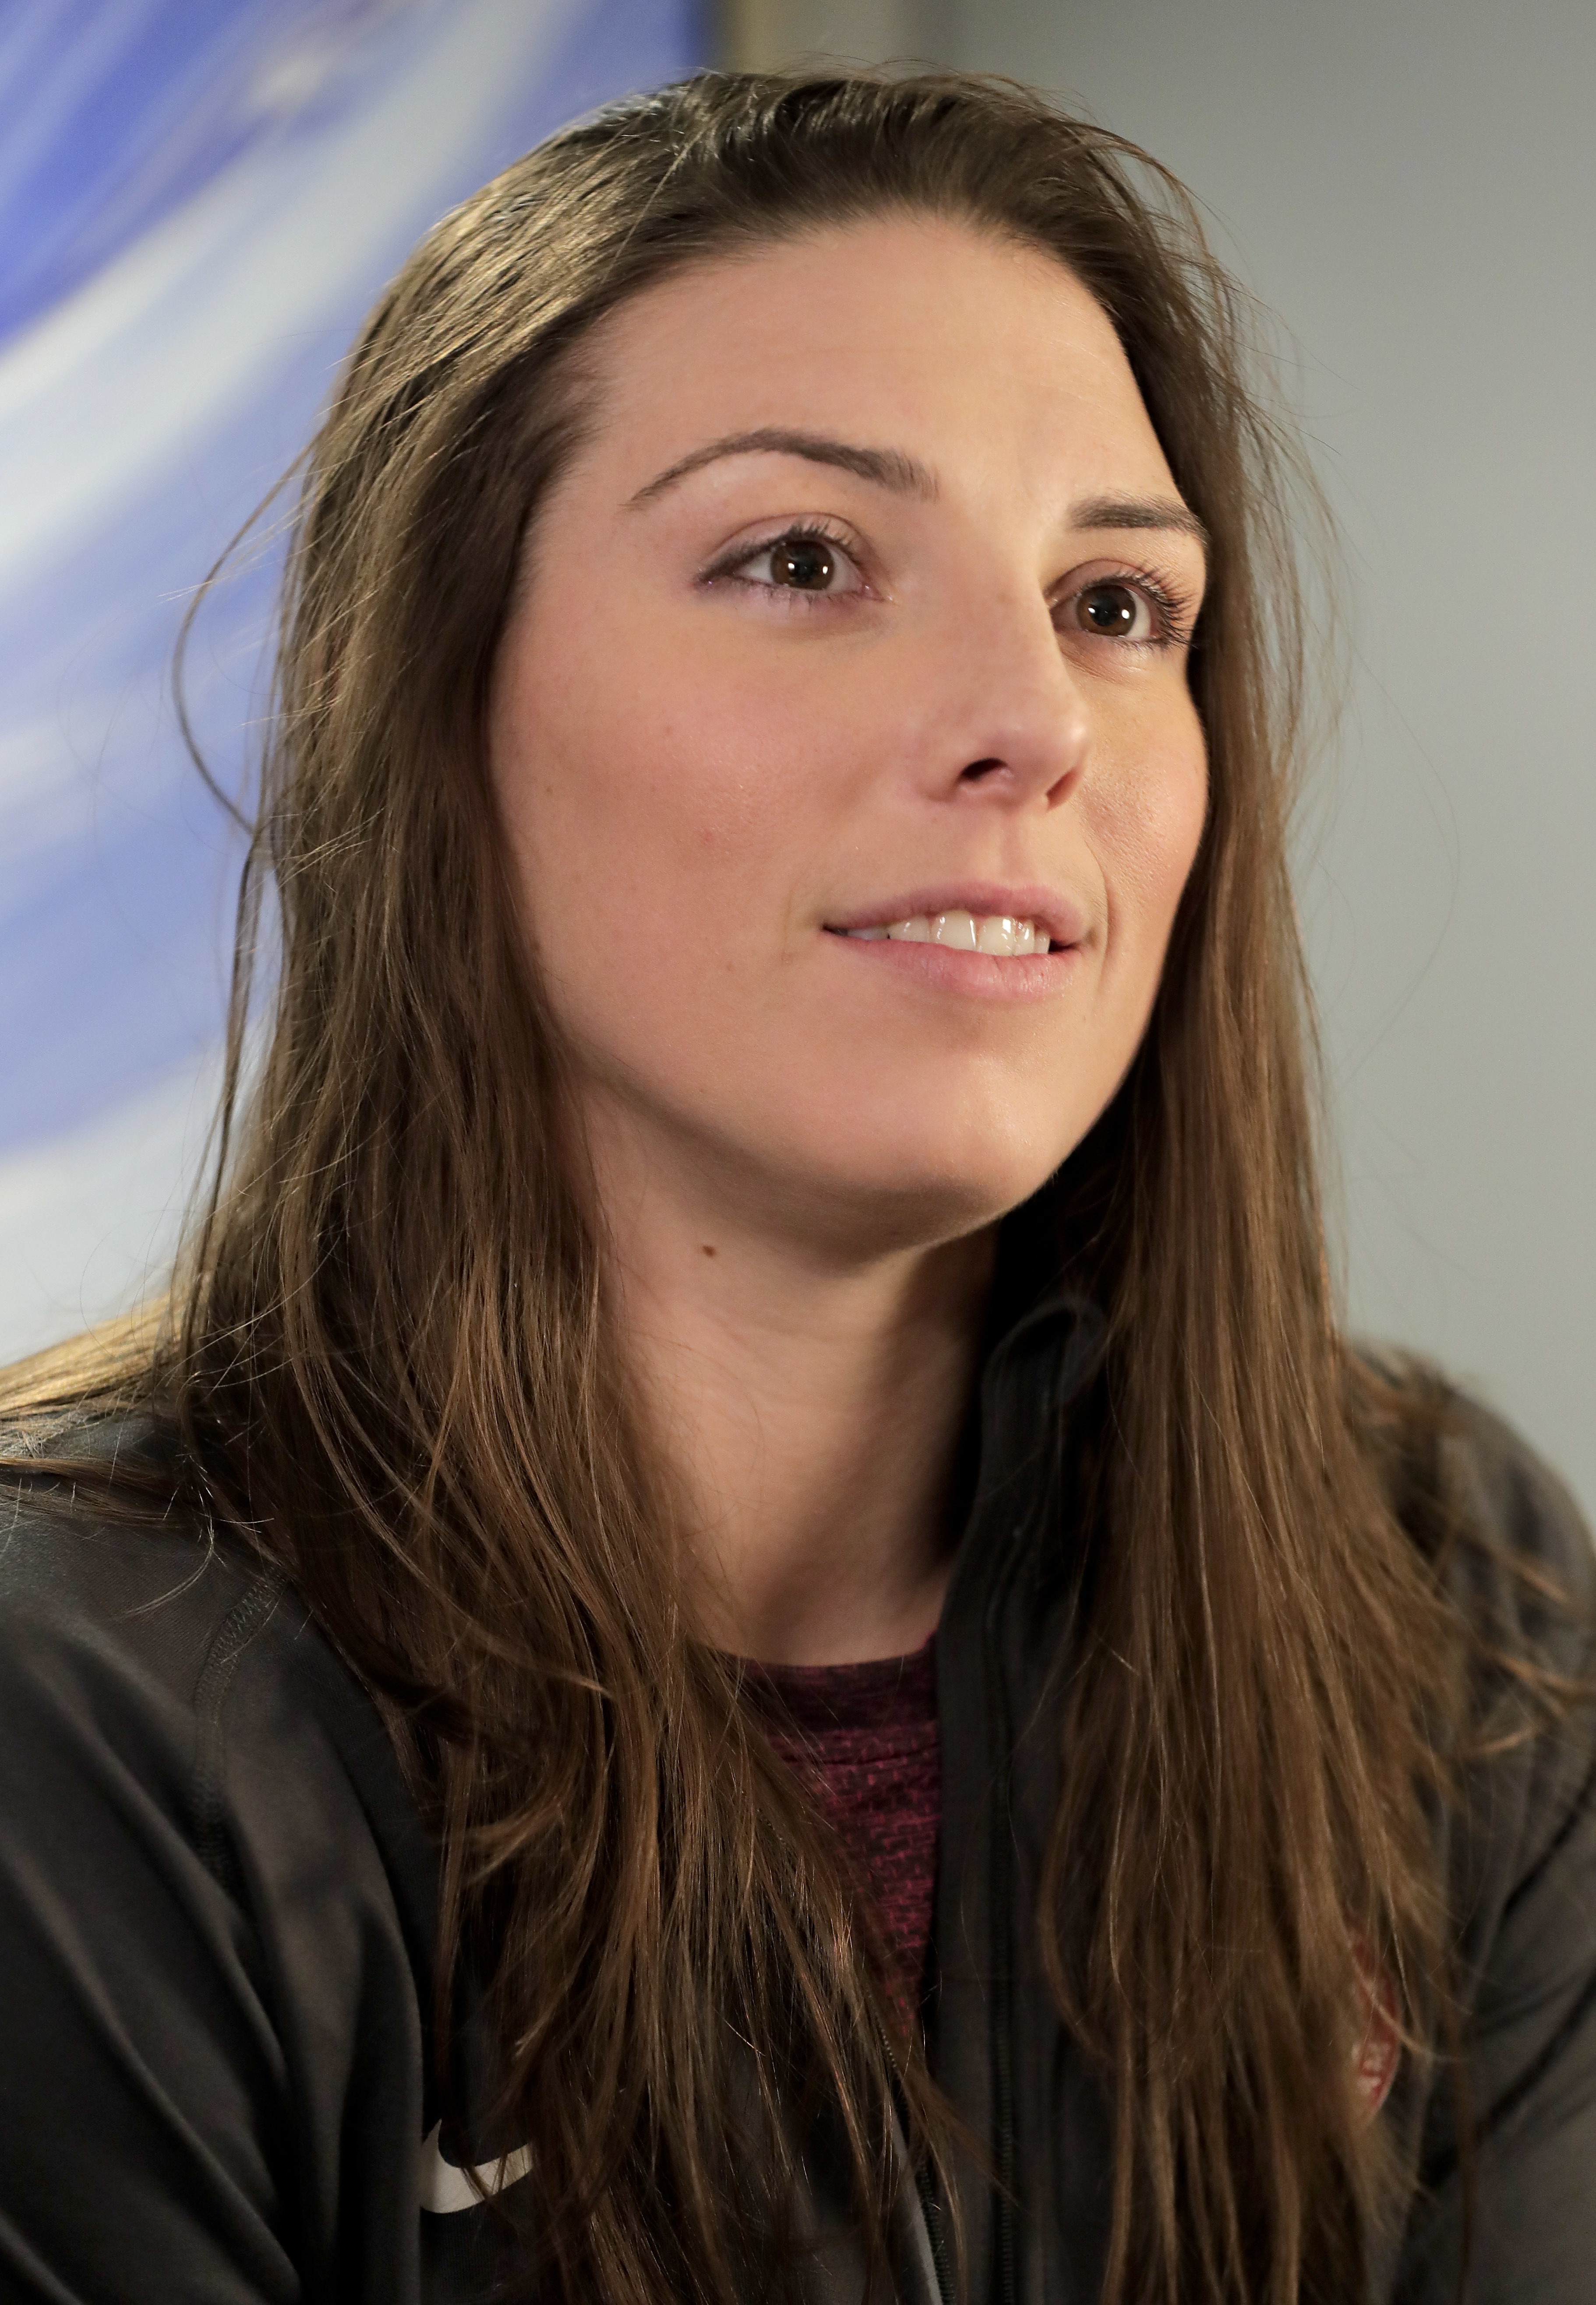 FILE - In this Feb. 7, 2017, file photo, WNHL player Hilary Knight answers questions during an interview in New York. The U.S. women's hockey team is threatening to boycott the world championships because of a wage dispute. The team announced Wednesday th